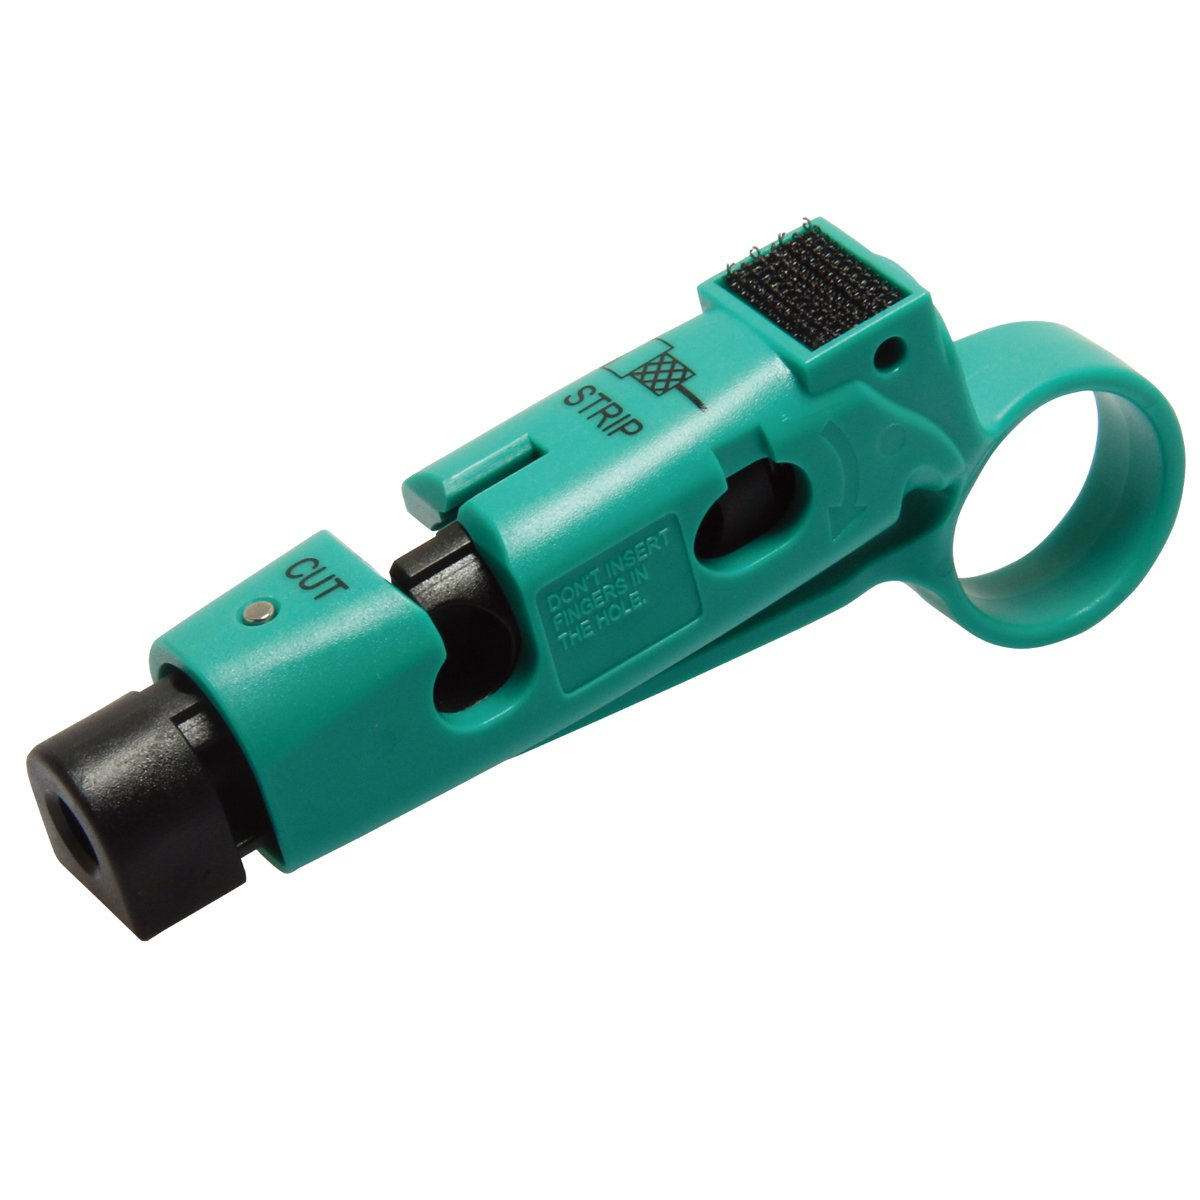 CP-507 Coaxial Cable Stripper/Cutter for RG-59, RG-6 Coaxial Cable Wire Stripper Tool 111mm Length by Tpmall (Image #1)